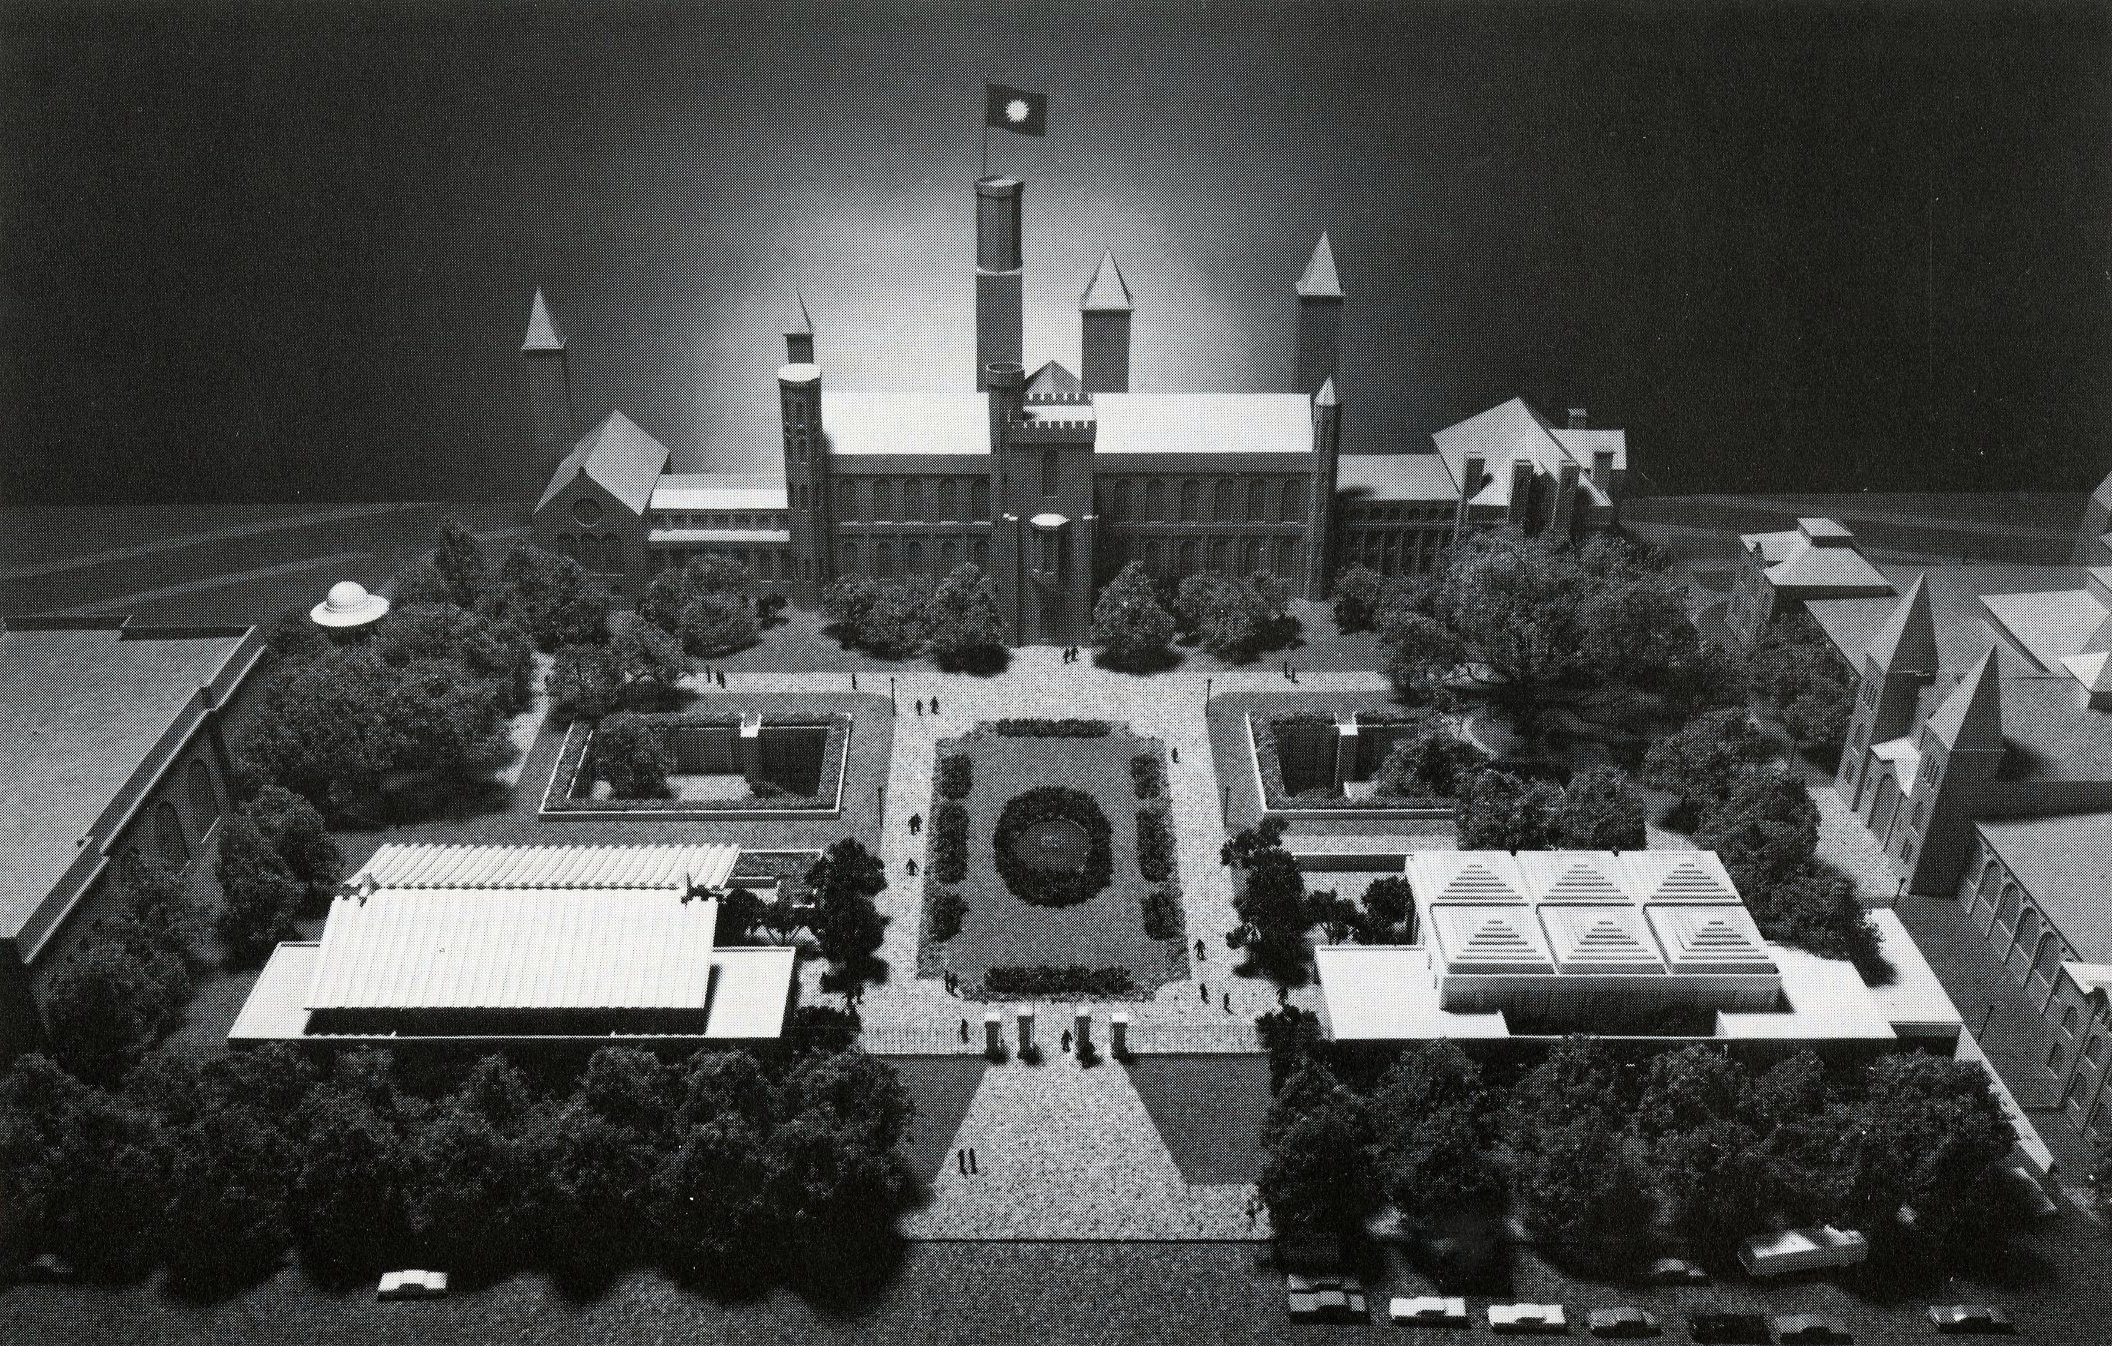 Model of Quadrangle, by Dane A. Penland.